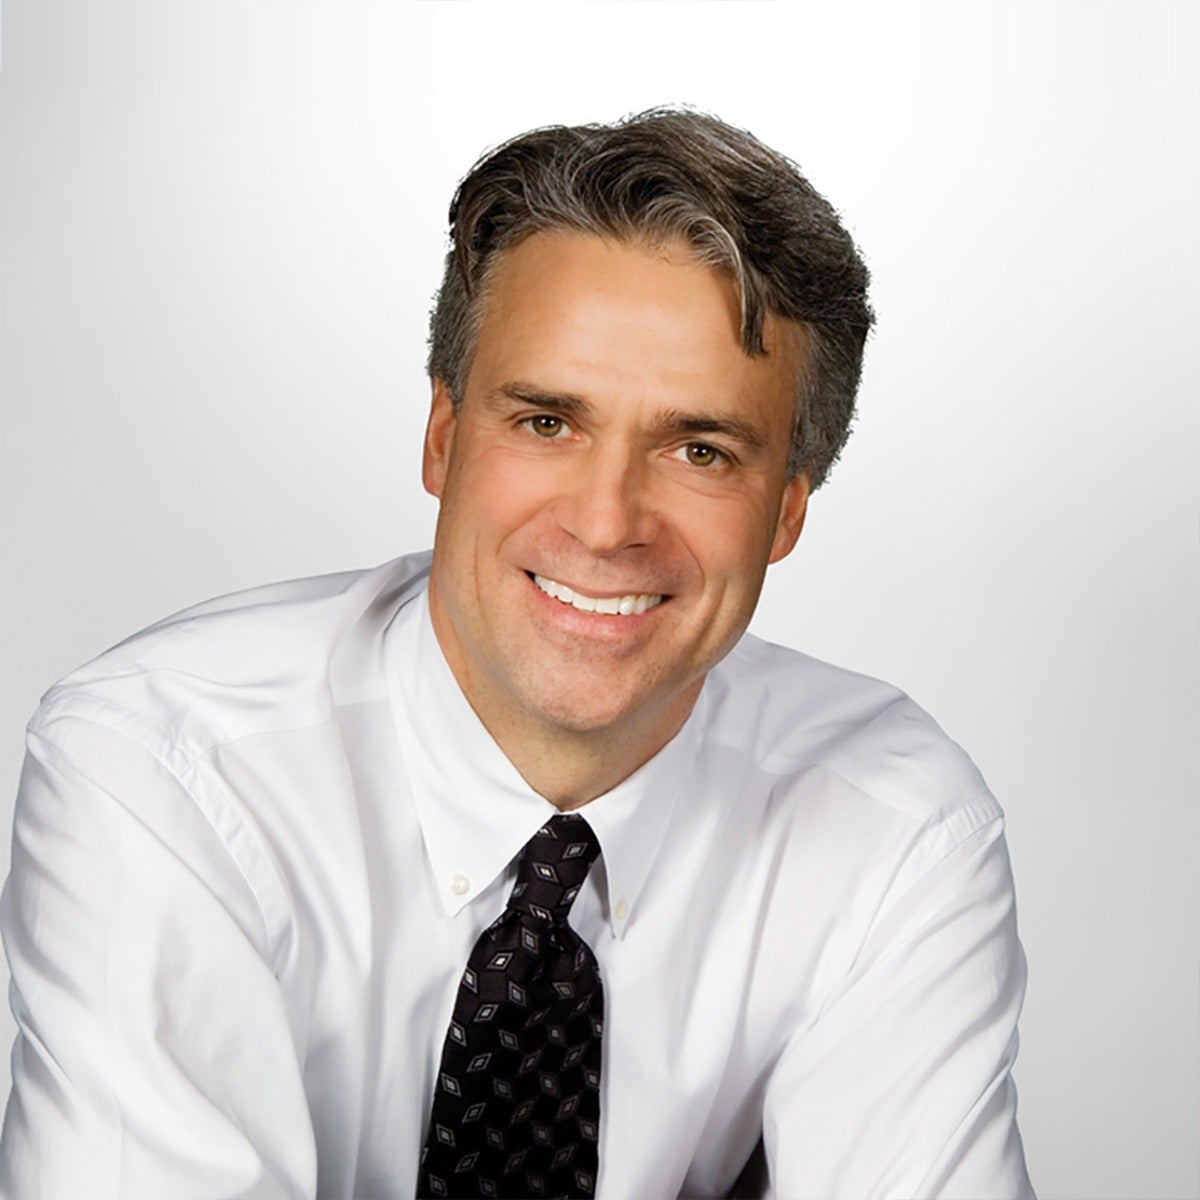 Dr. Peter Harnois provides state-of-the art minimally invasive dentistry - DenMat Lab produces the beautiful, natural result